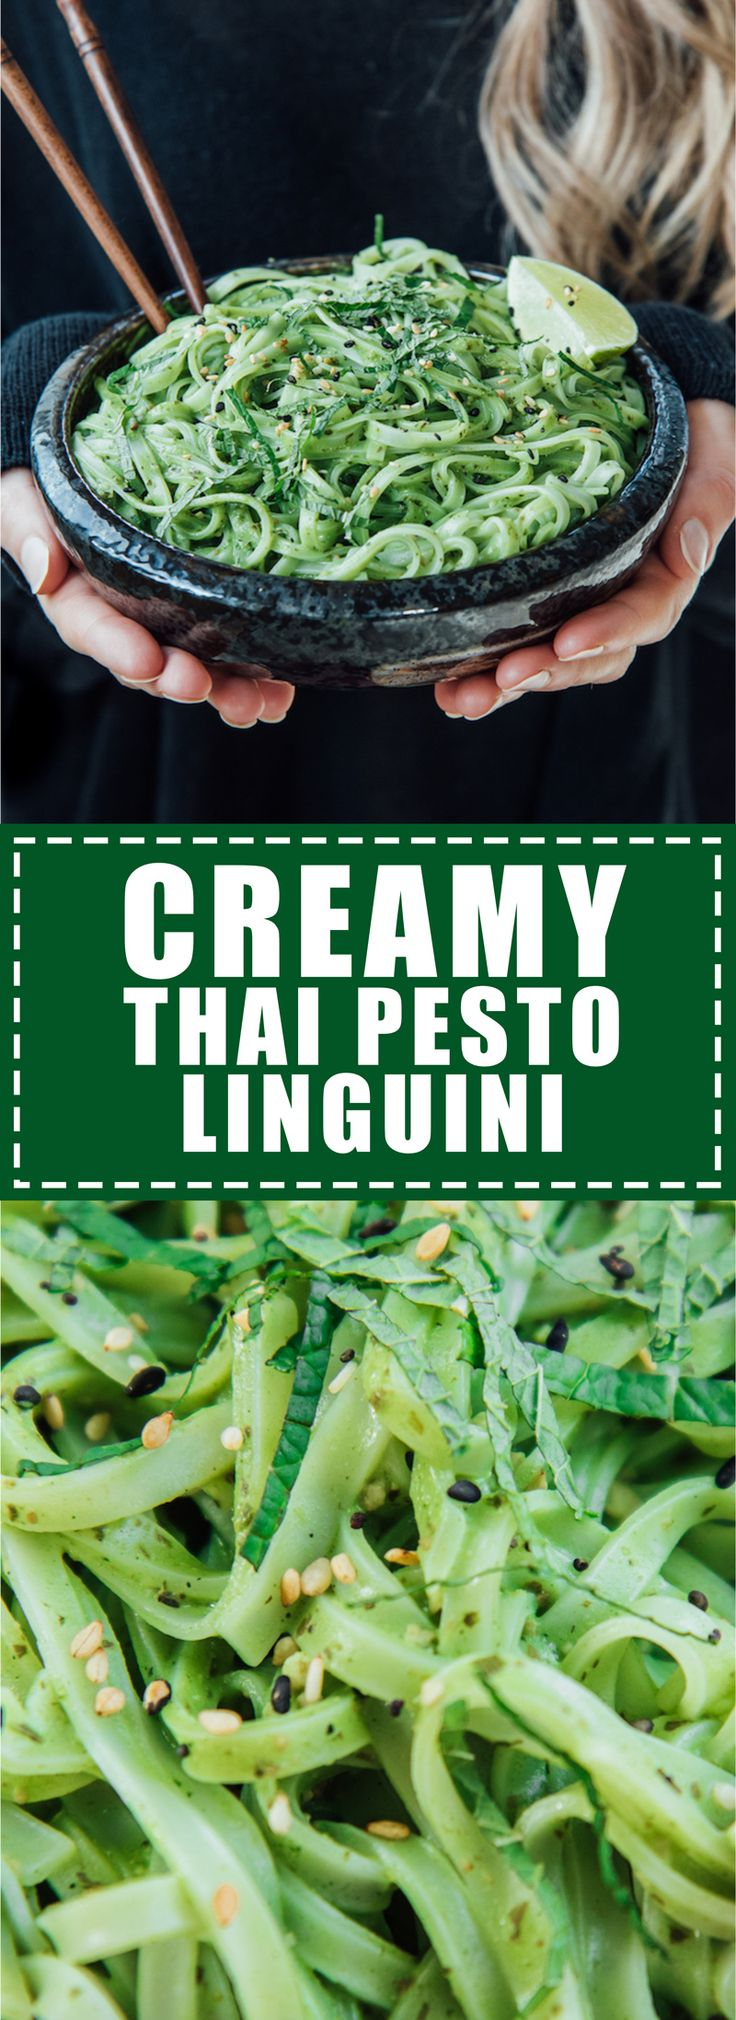 This creamy Thai pesto linguini is healthy comfort food at its finest. Easy to make, vegan, and gluten-free!